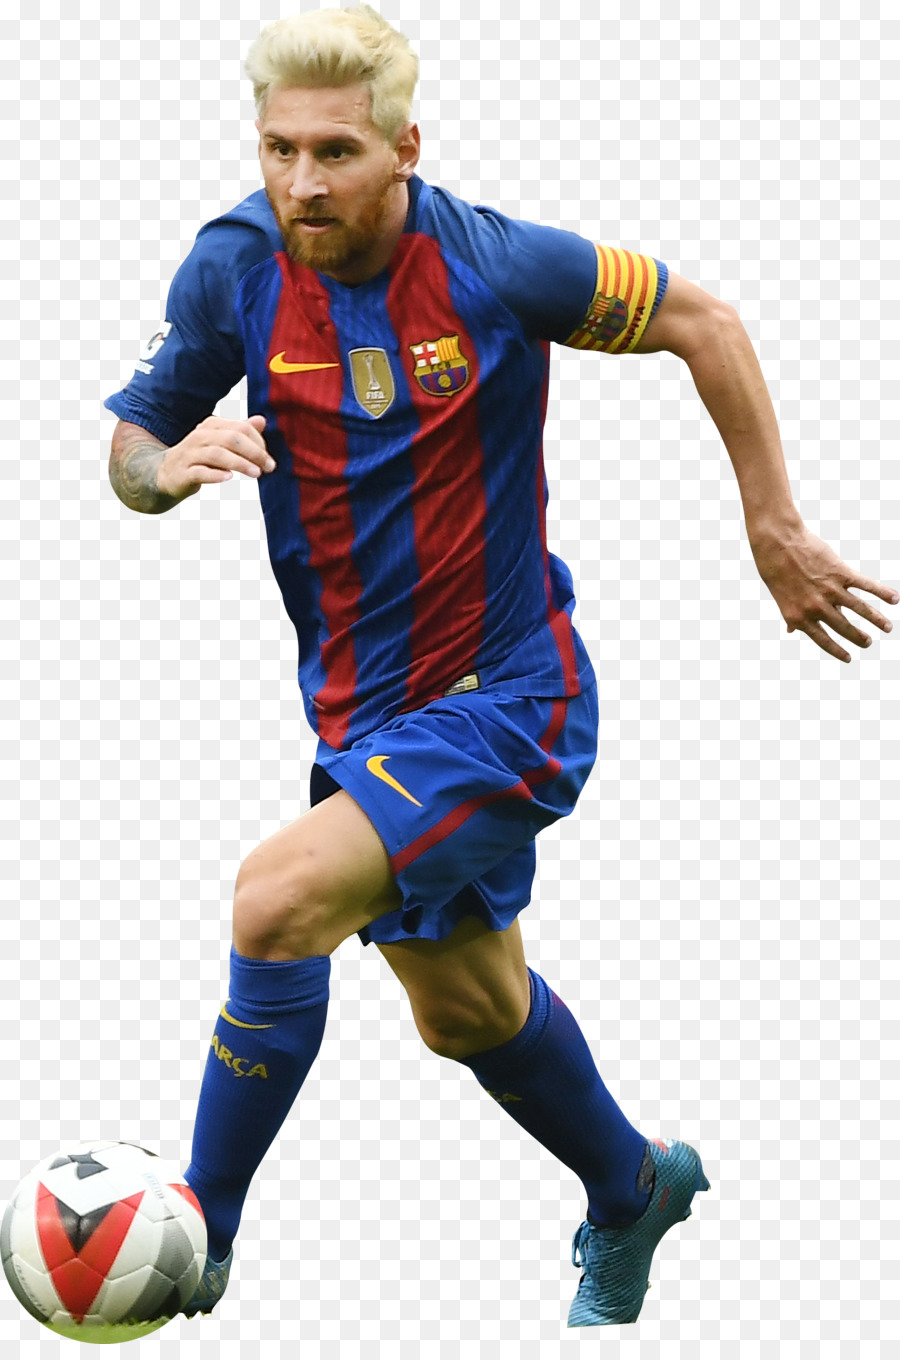 Lionel messi clipart vector transparent download Messi Cartoon clipart - Football, Ball, Product, transparent ... vector transparent download